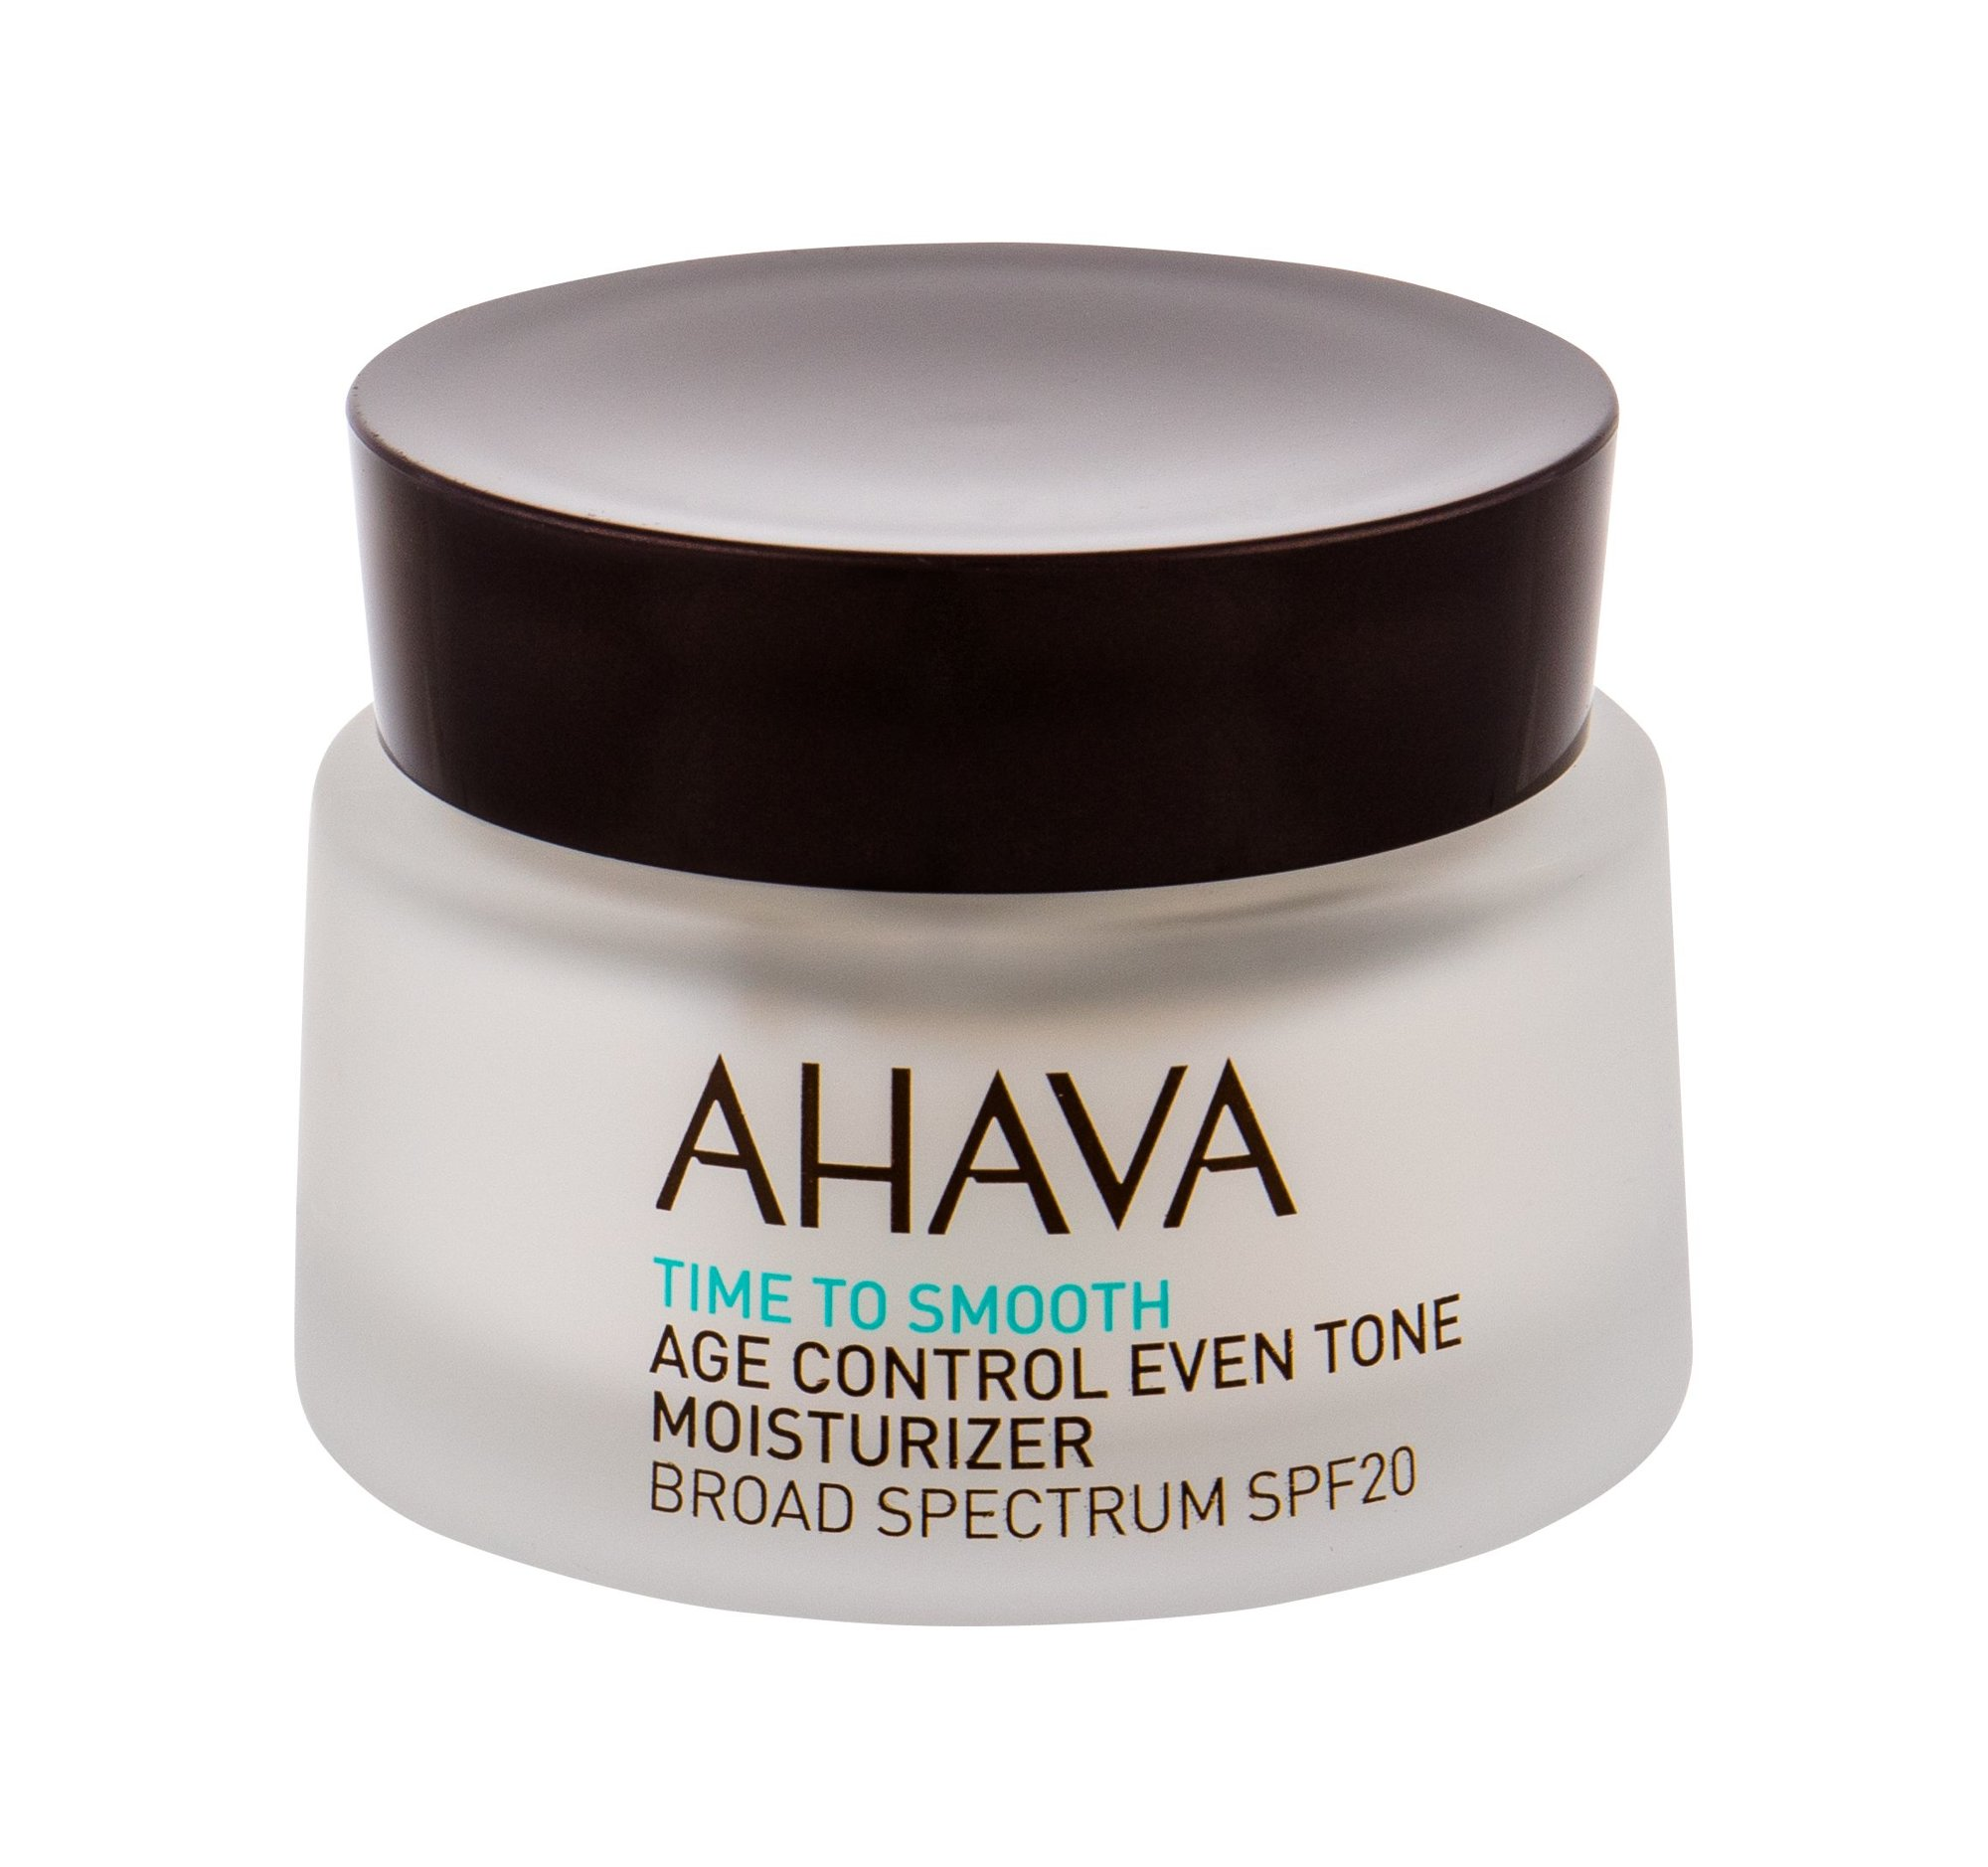 AHAVA Age Control Day Cream 50ml  Time To Smooth